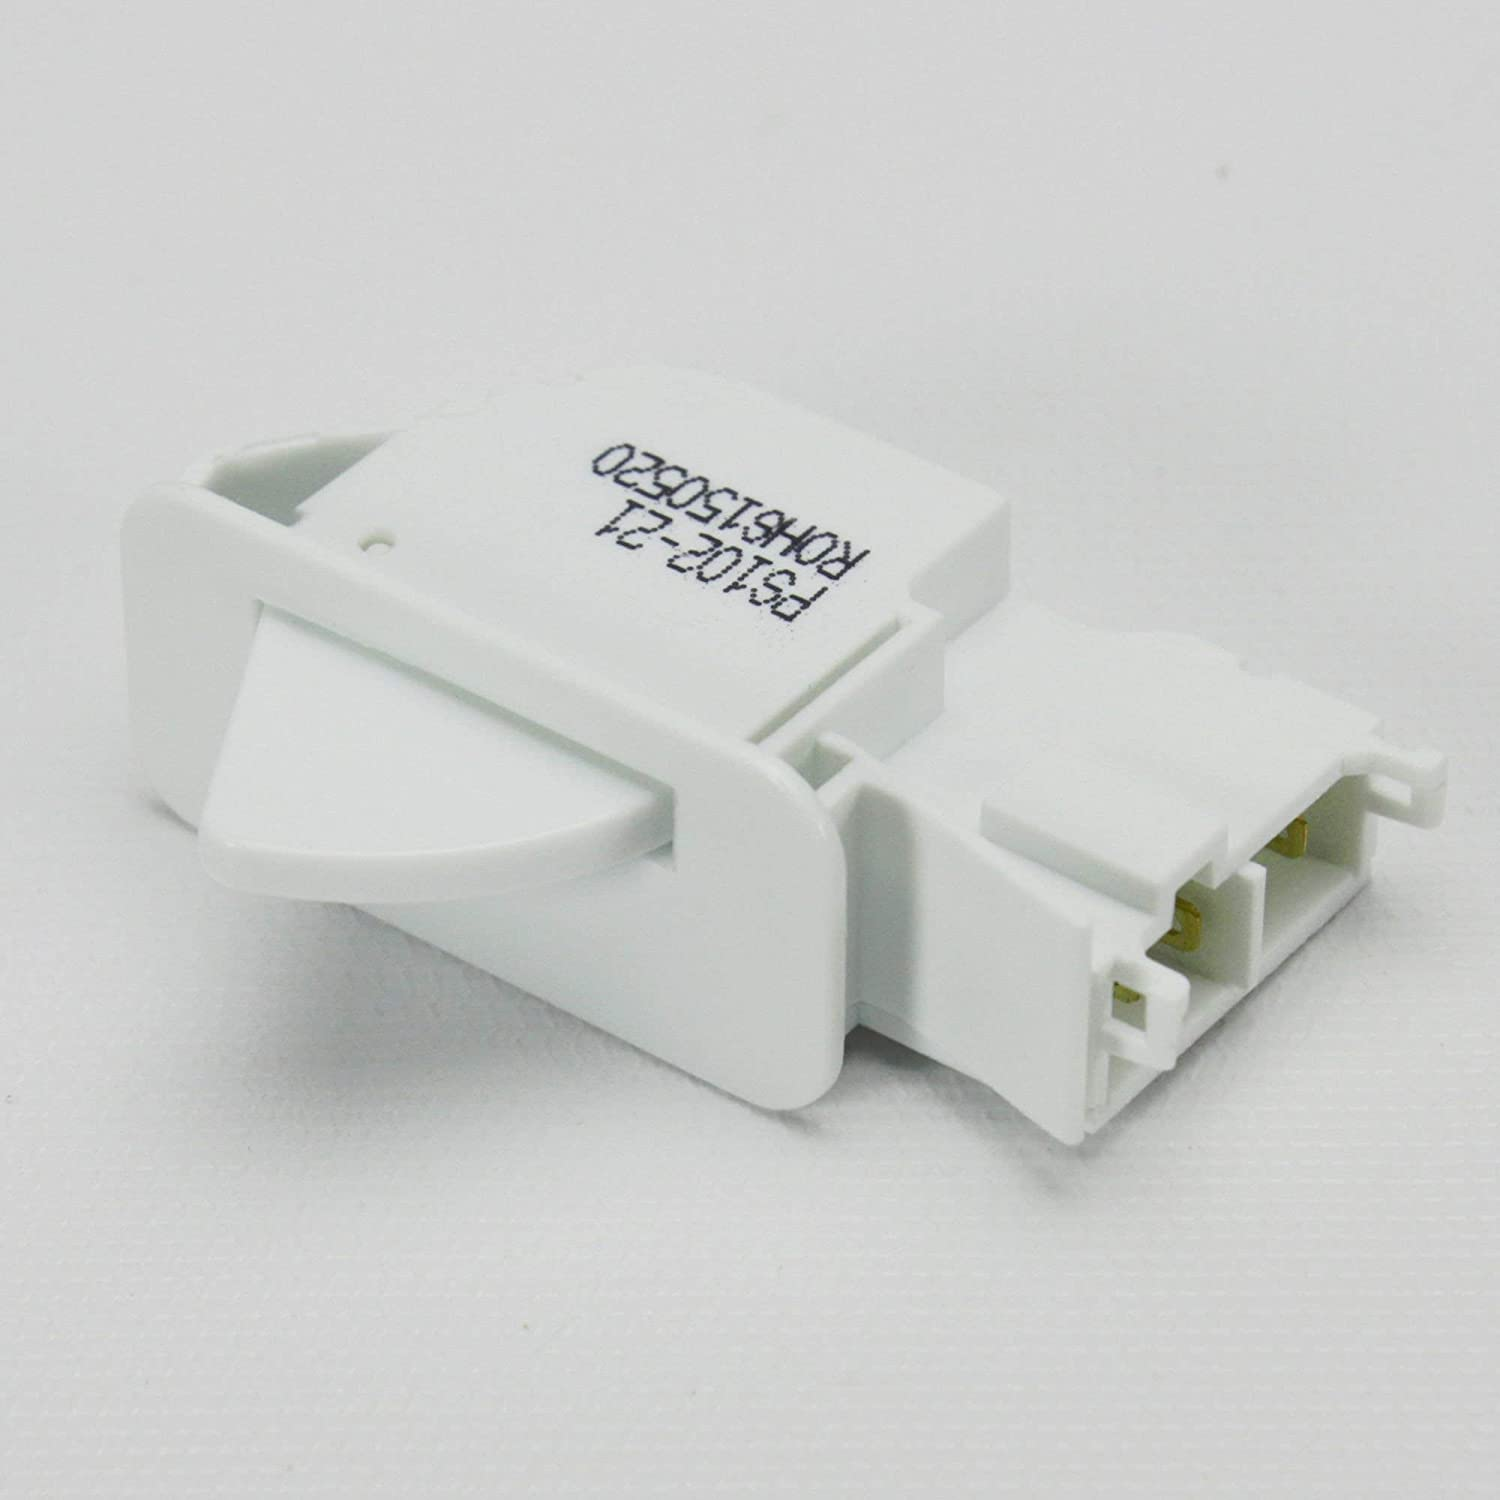 LG Electronics 6600JB1010A Refrigerator Door Push Button Switch